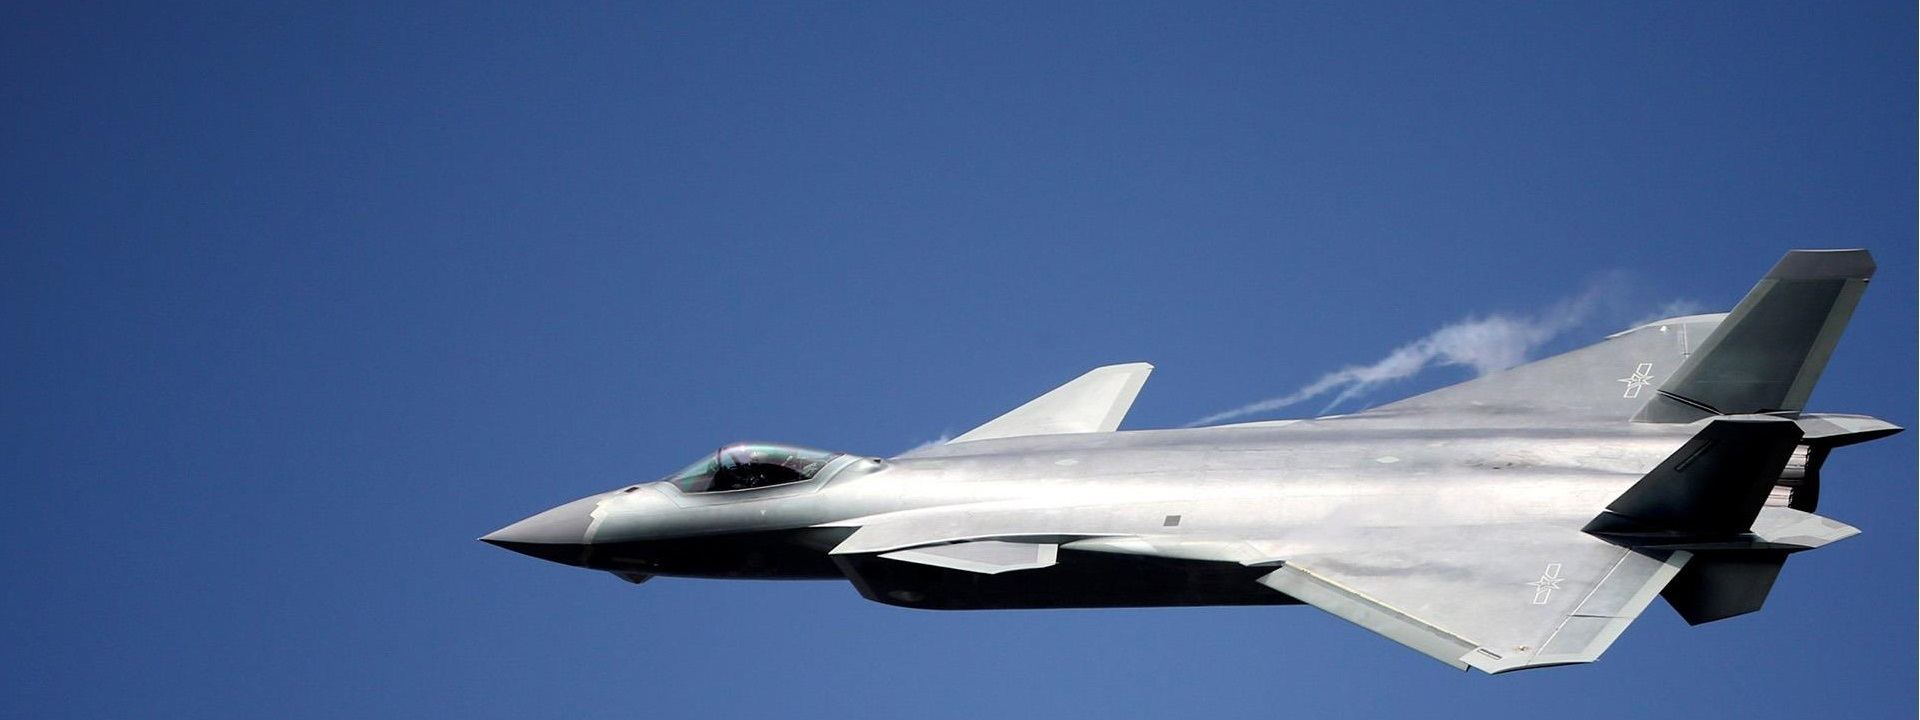 The Chengdu J-20 Mighty Dragon - new challenge?